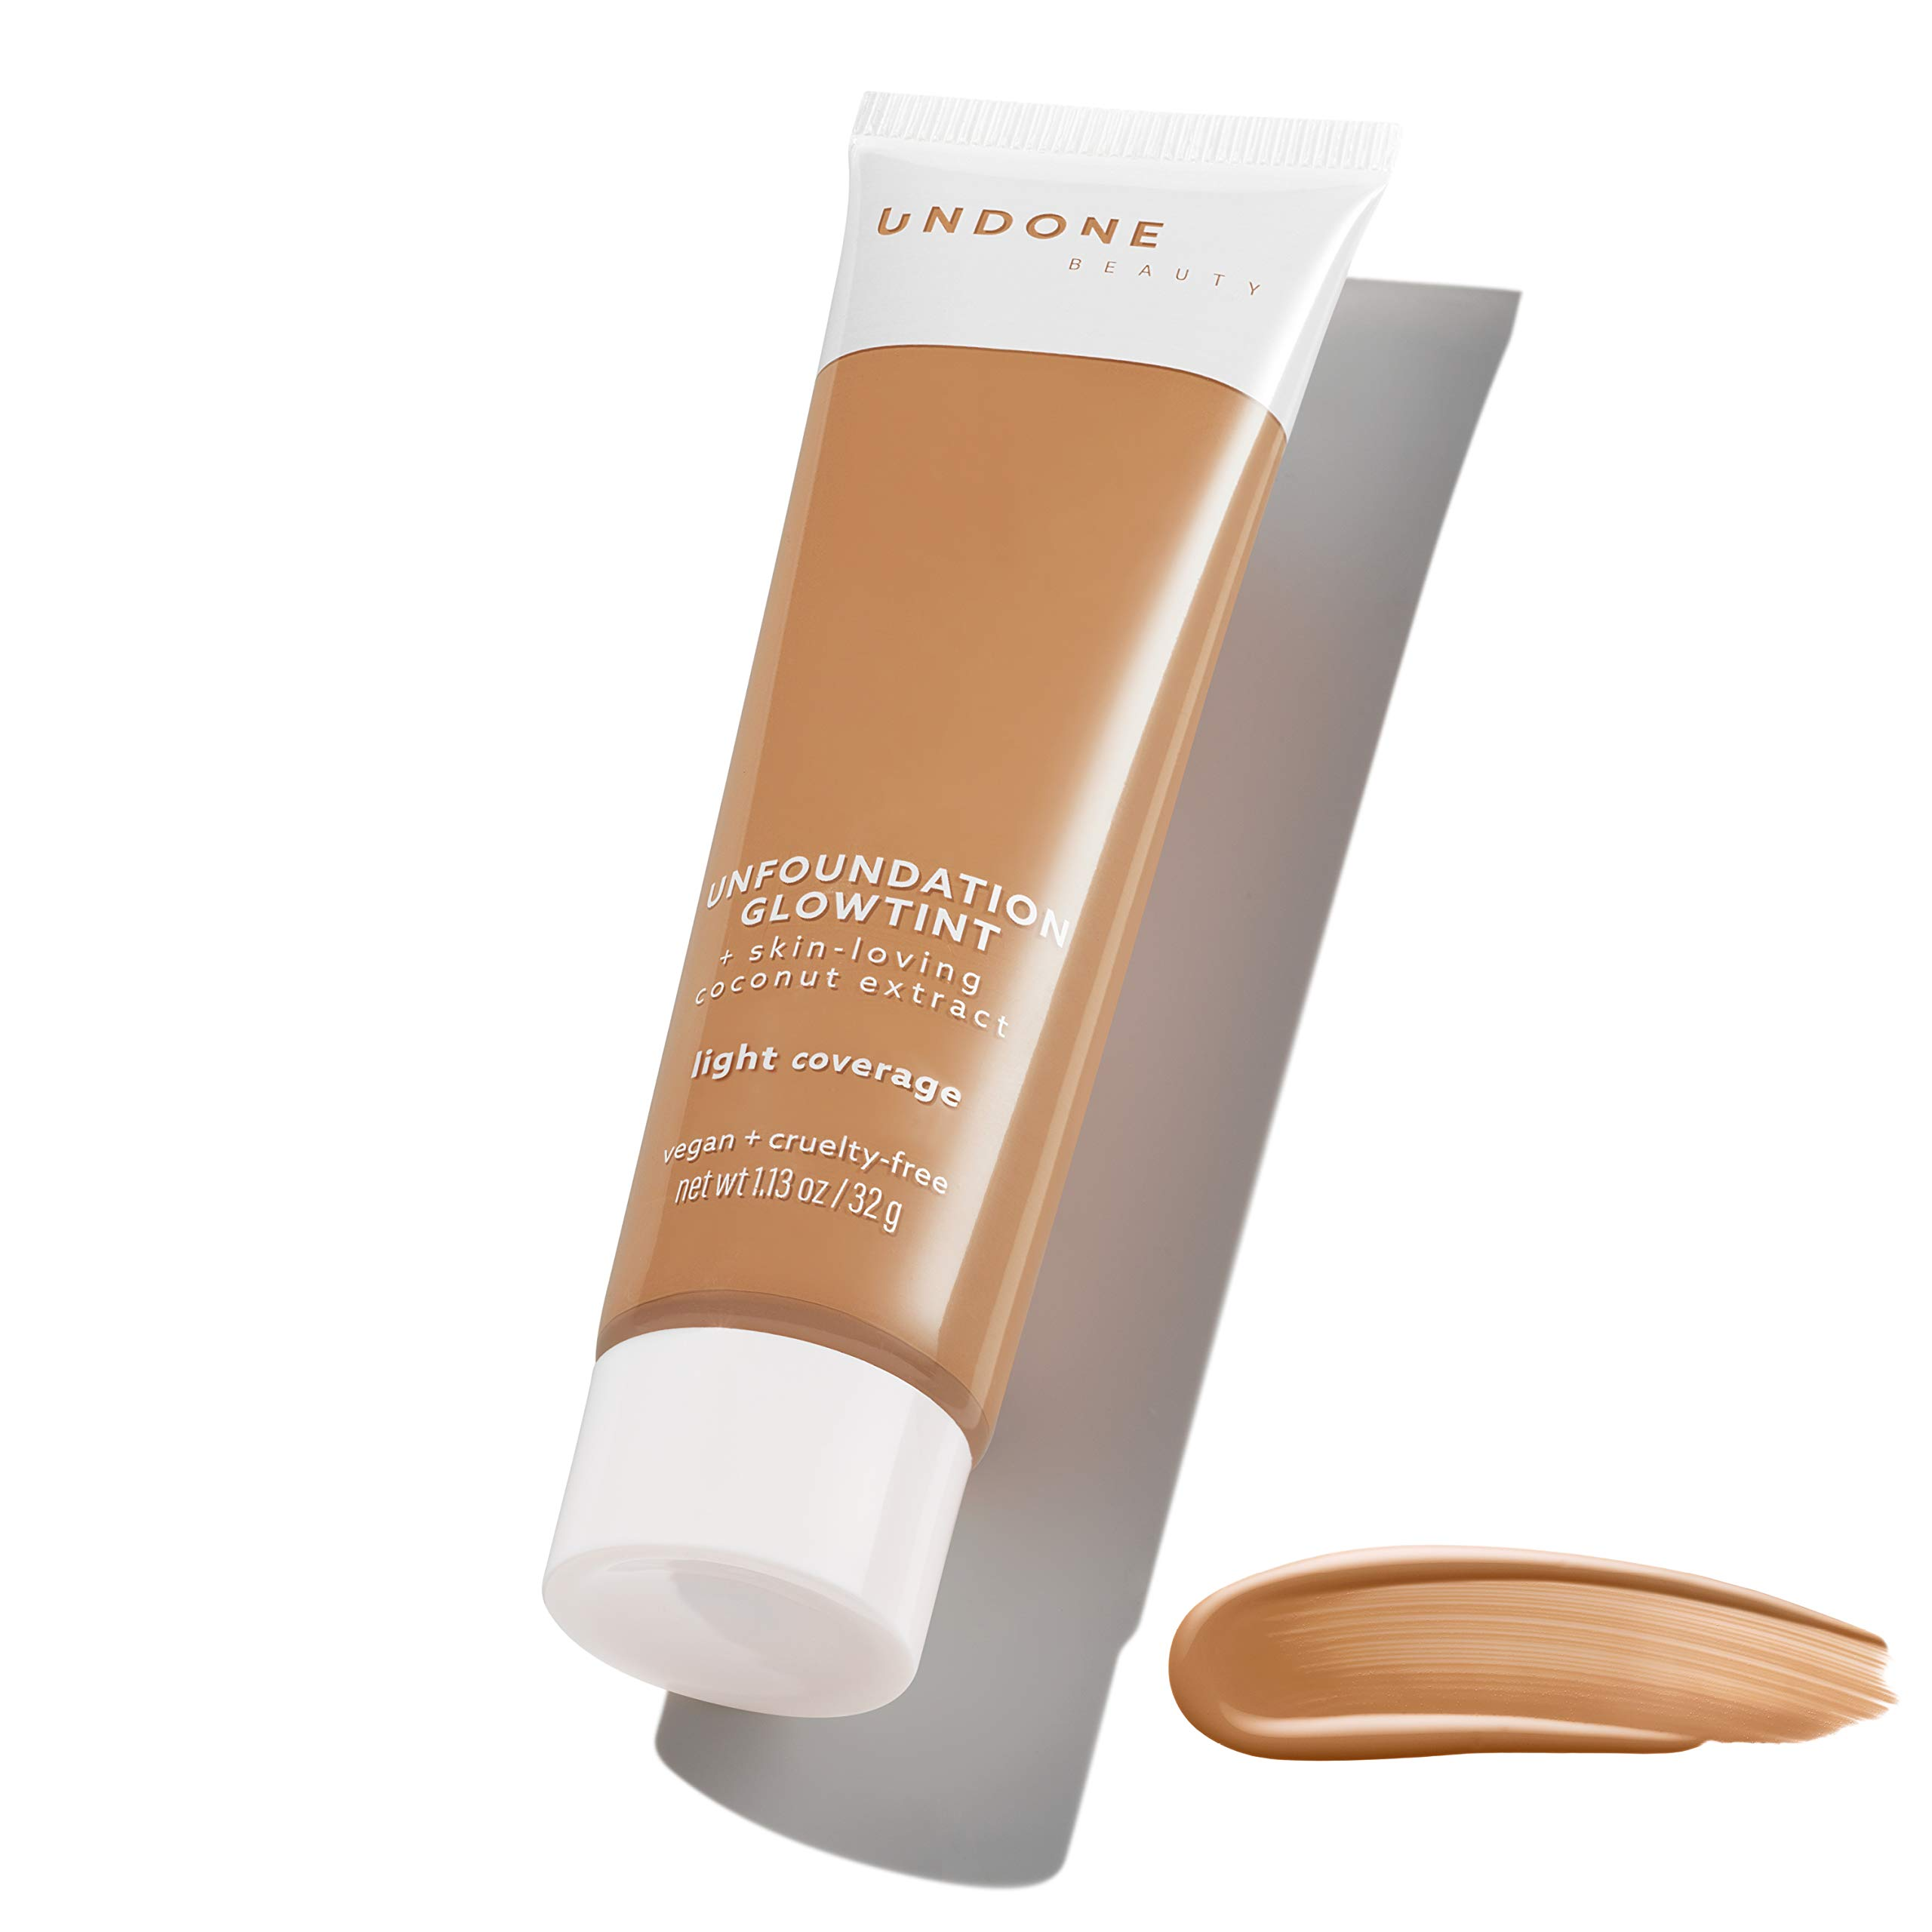 Light Coverage Glow Tint Foundation. Coconut for Natural, Dewy Deep Neutral Glow – UNDONE BEAUTY Unfoundation Glow Tint. Enhances Face Shape, Cheeks & Jawline. TOASTED ALMOND MEDIUM DARK